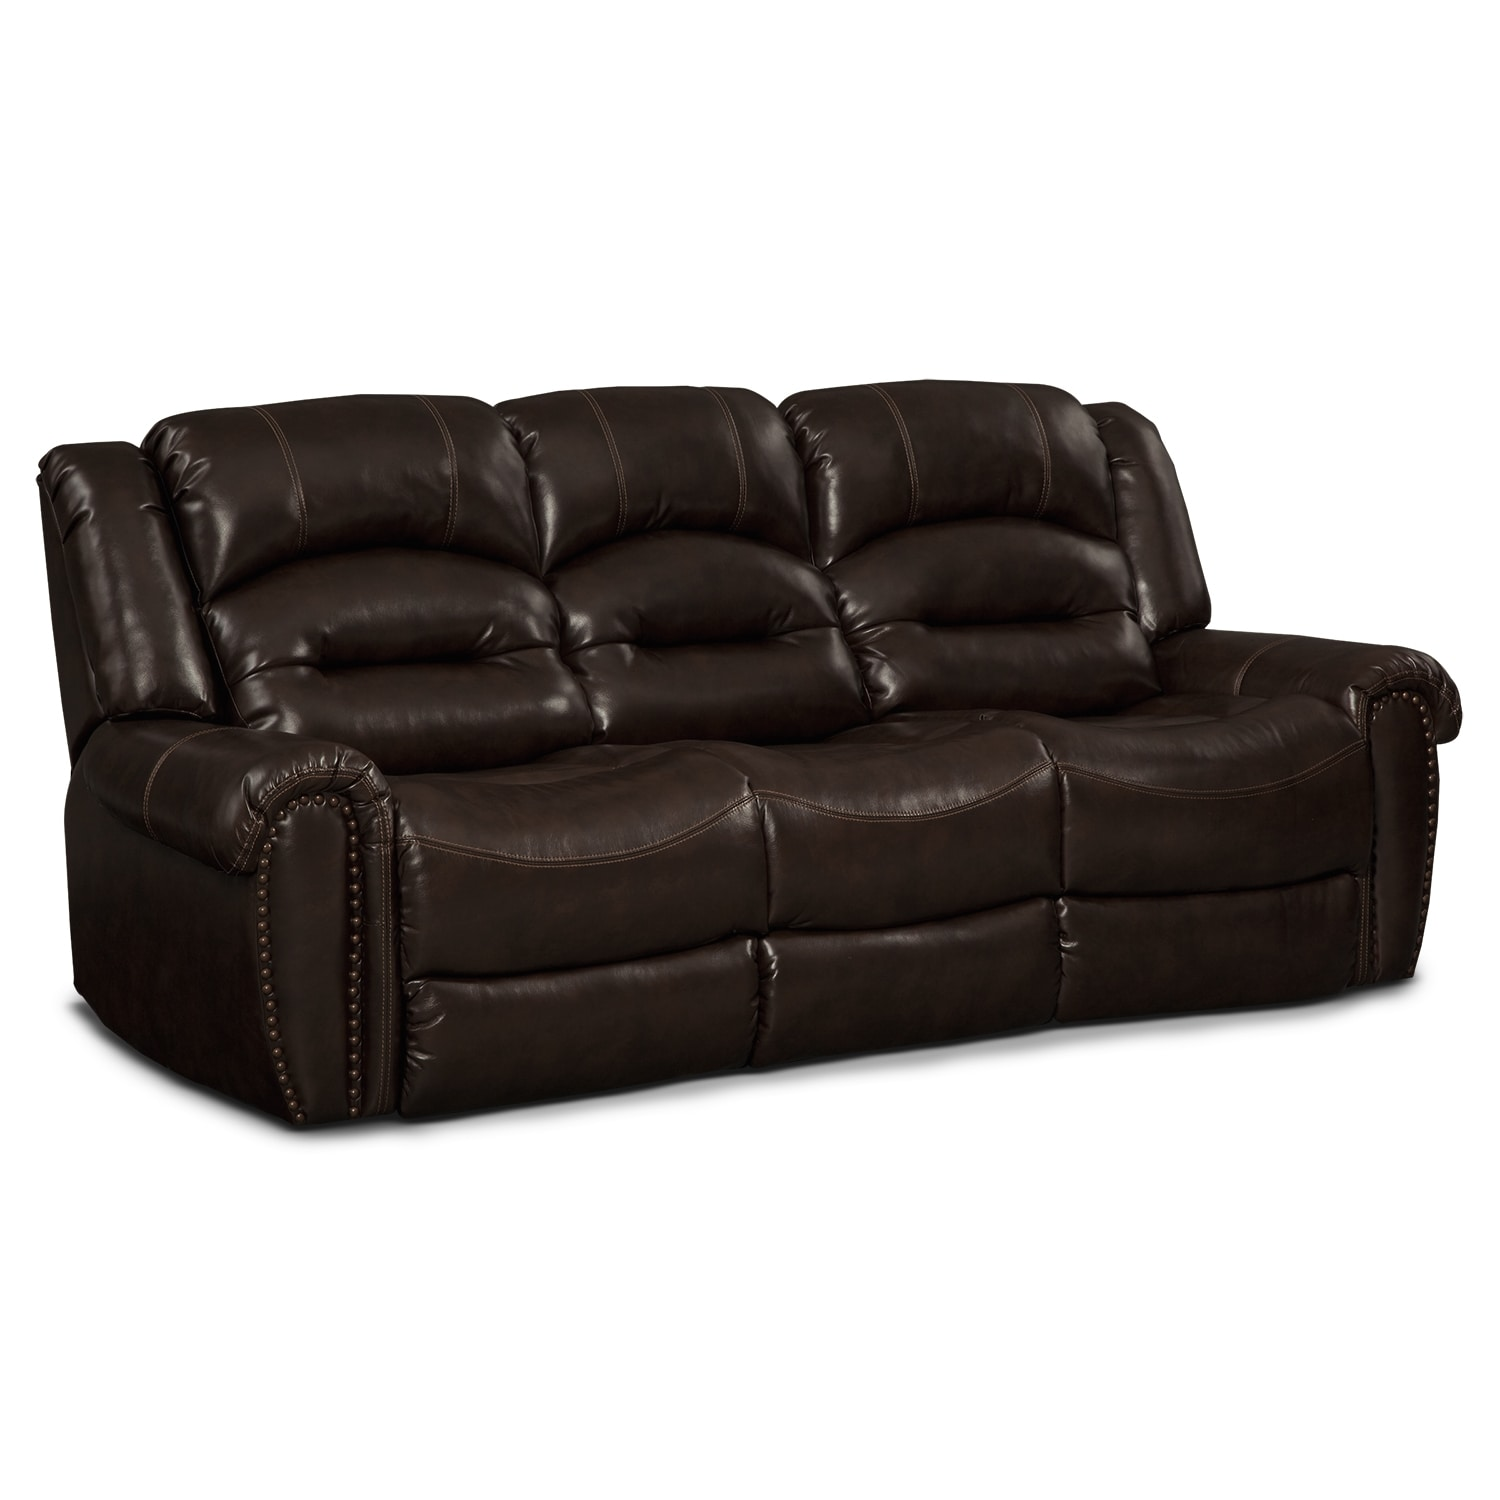 Galveston Dual Reclining Sofa